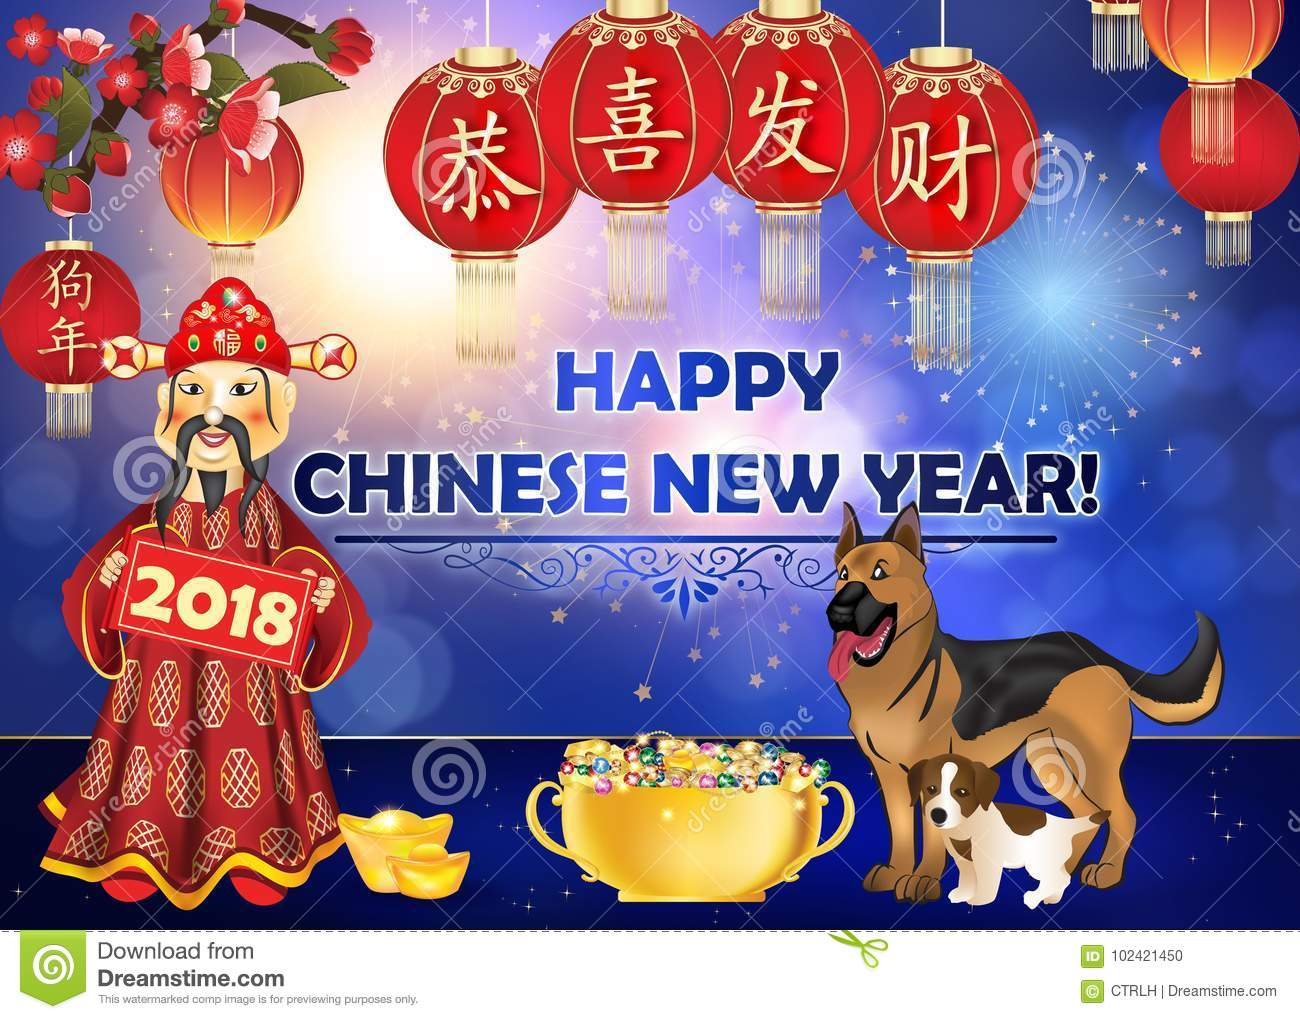 Happy Chinese New Year Of The Dog 2018 Corporate Greeting Card For